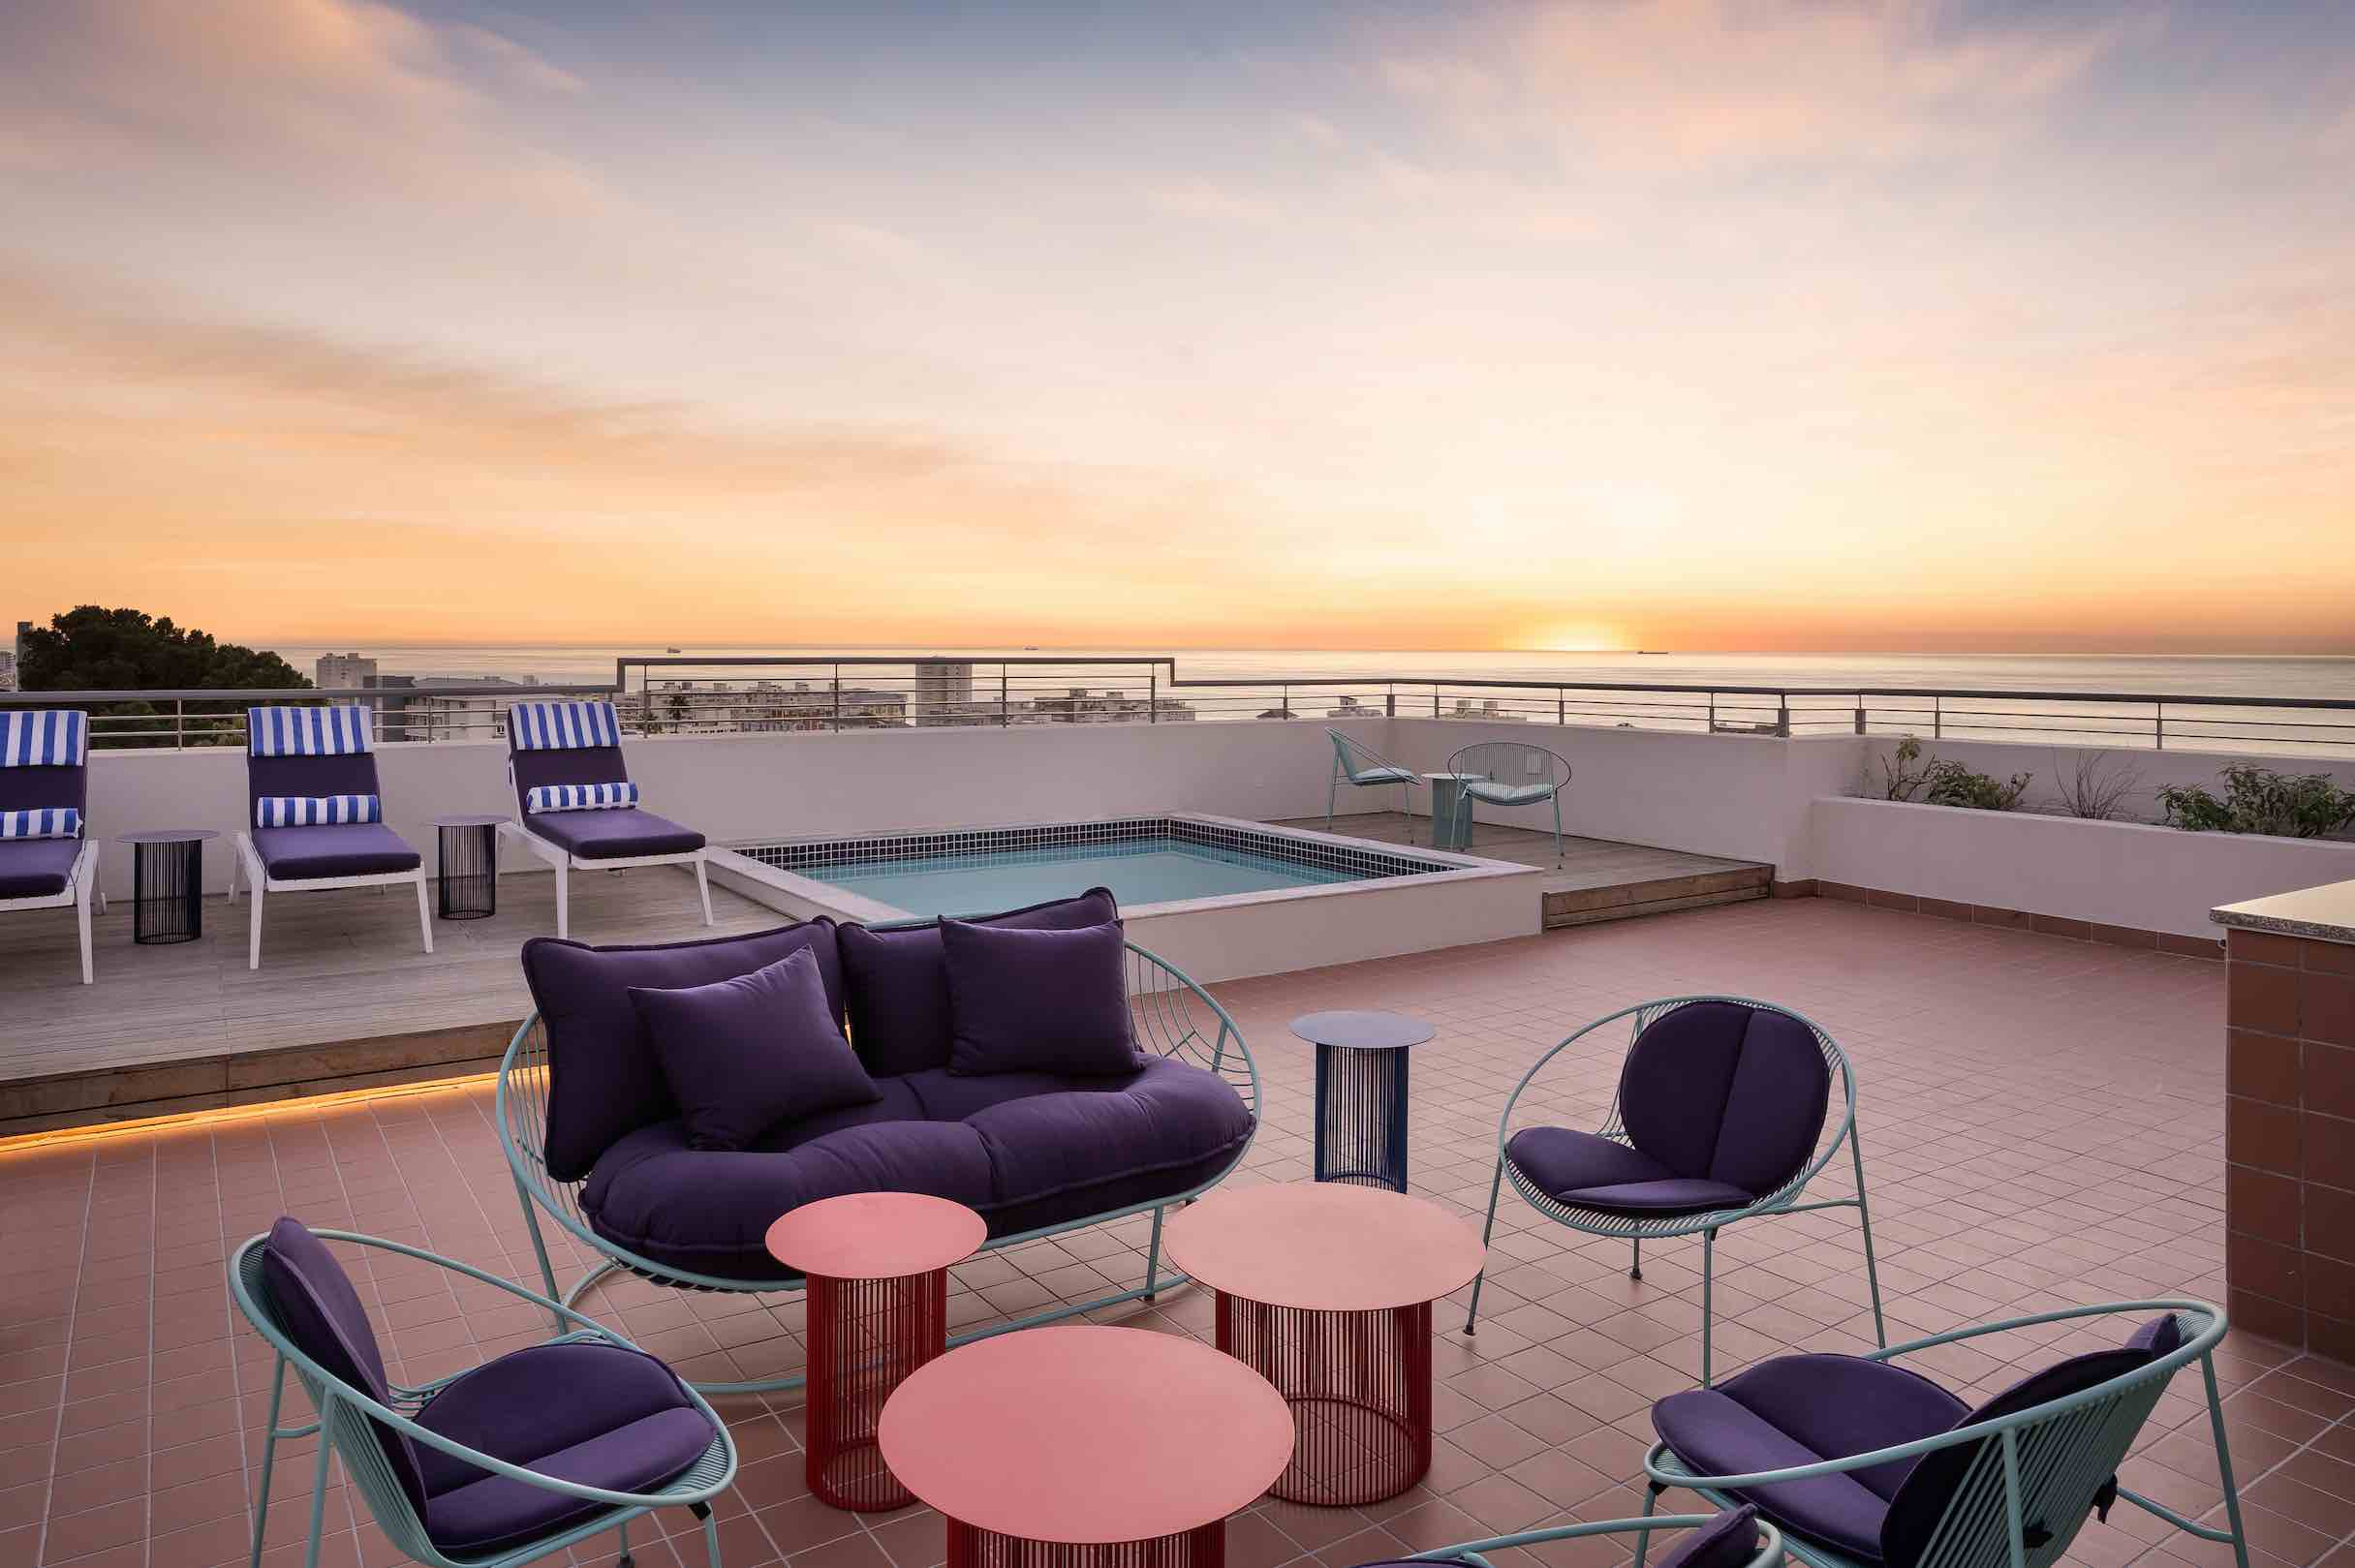 Home Suites Sea Point rooftop terrace with pool.